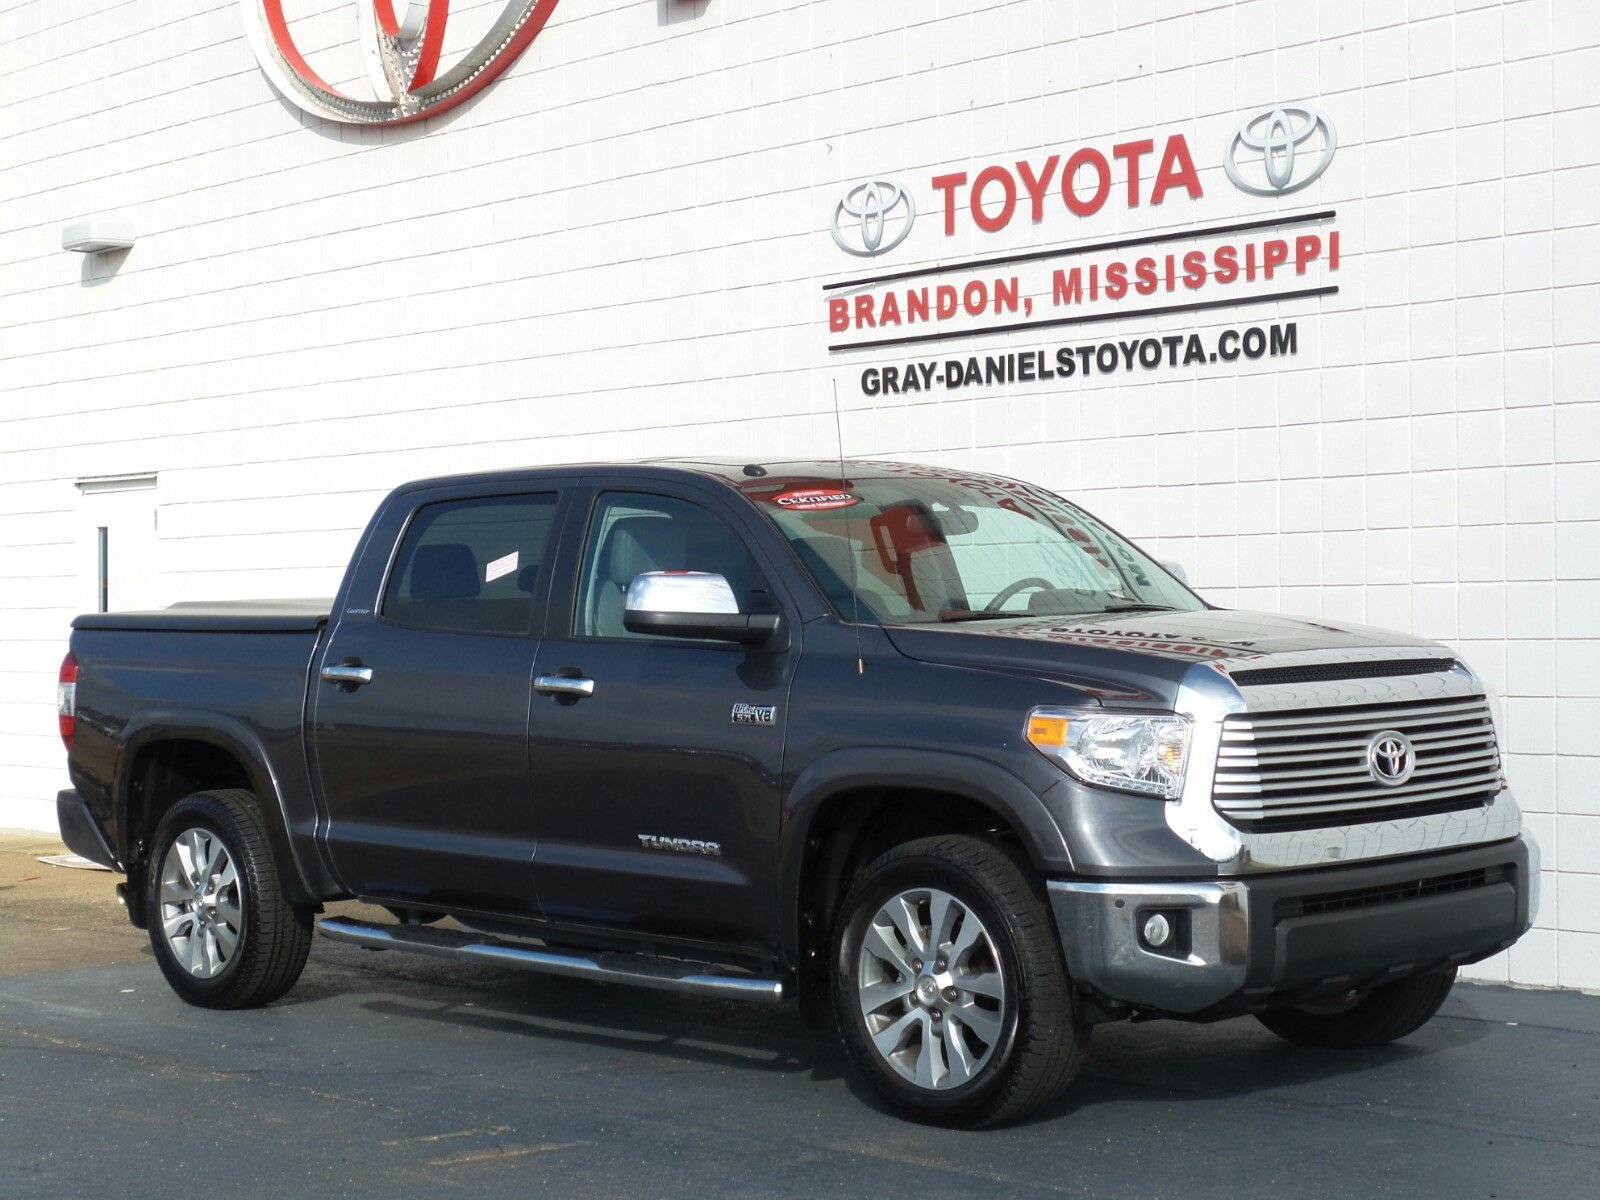 Used Toyota Jackson Pre Owned Dealer Ms Cars For Sale With Prices Hilux 2016 Tundra Limited 57l V8 W Ffv Truck Crewmax